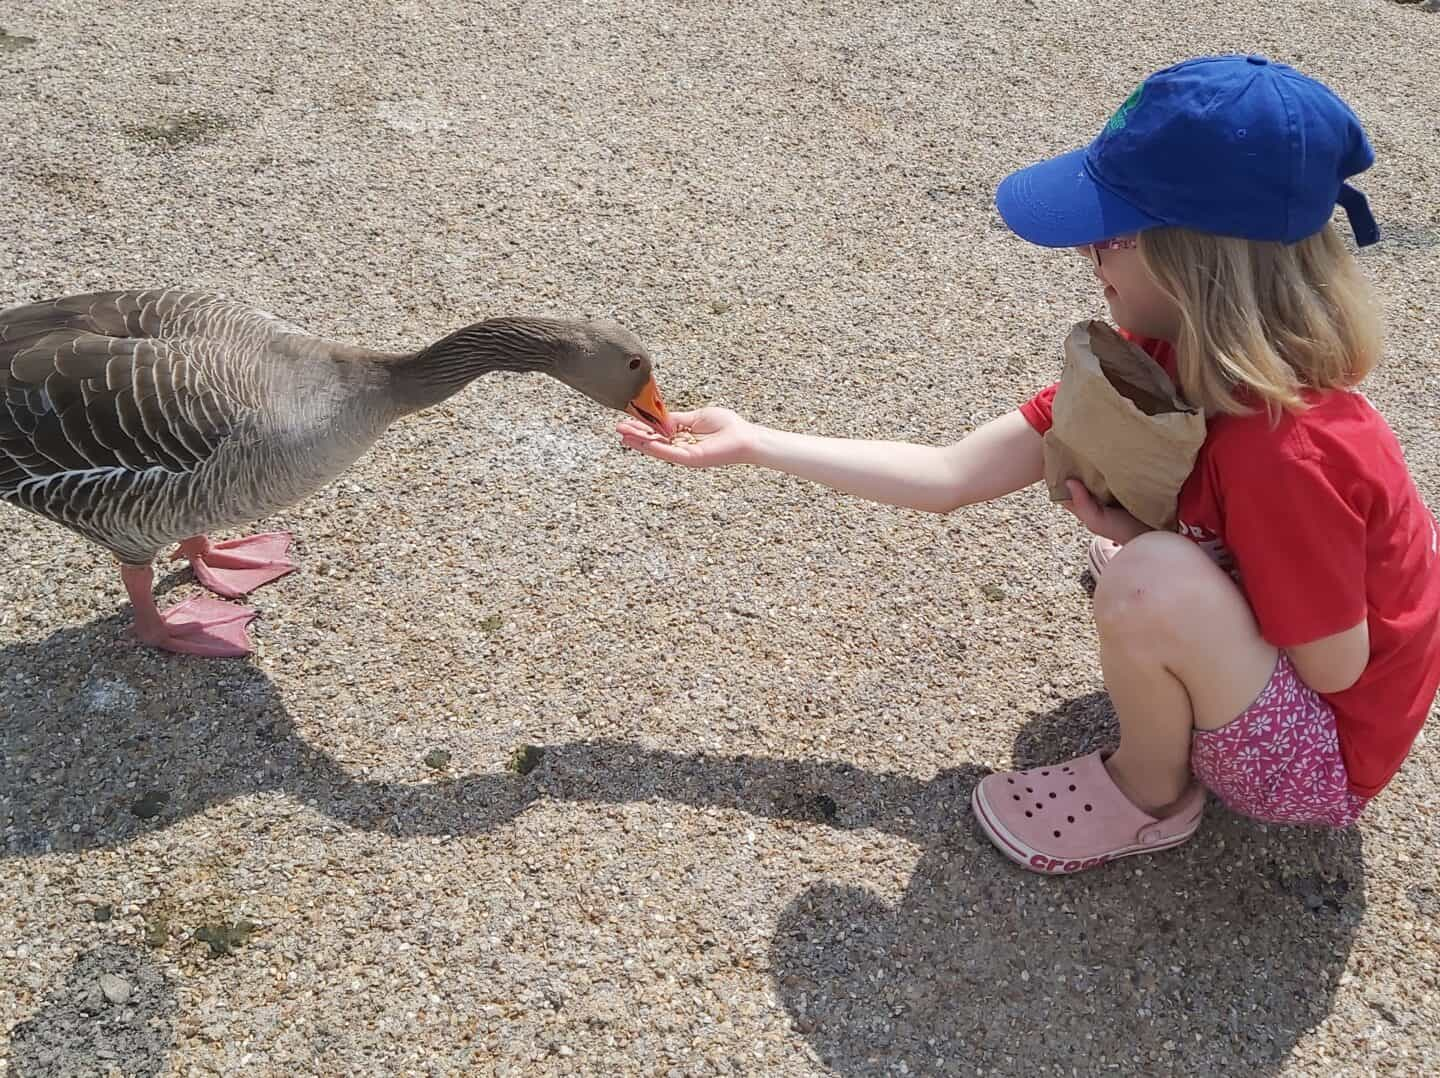 Wetland Heroes app: Family day out at WWT Slimbridge – review